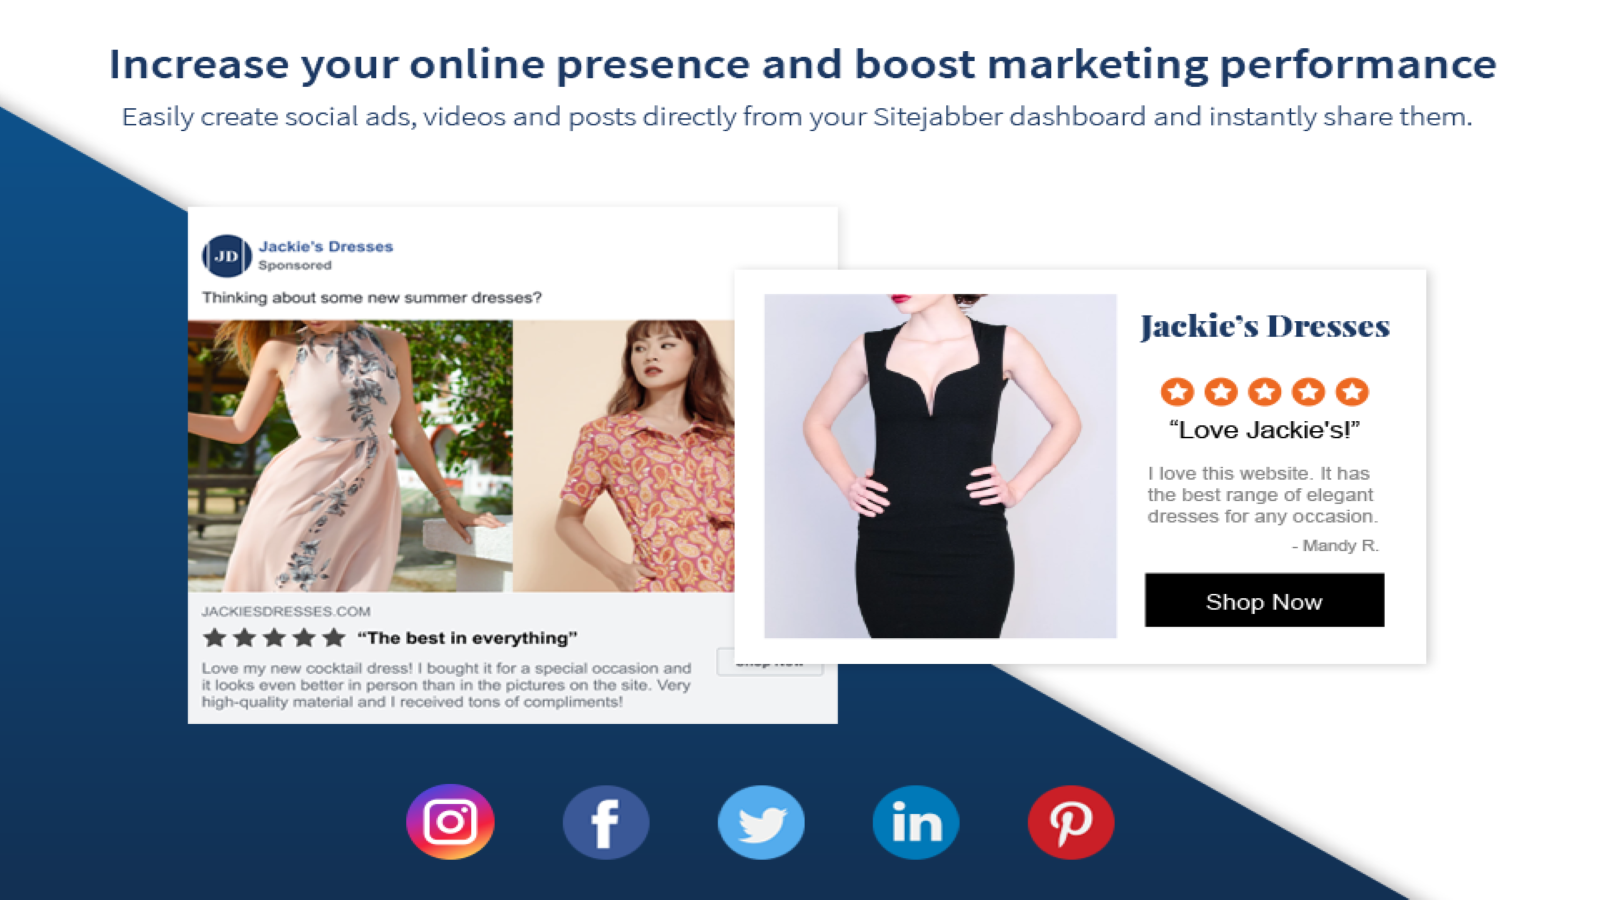 Boost your marketing performance